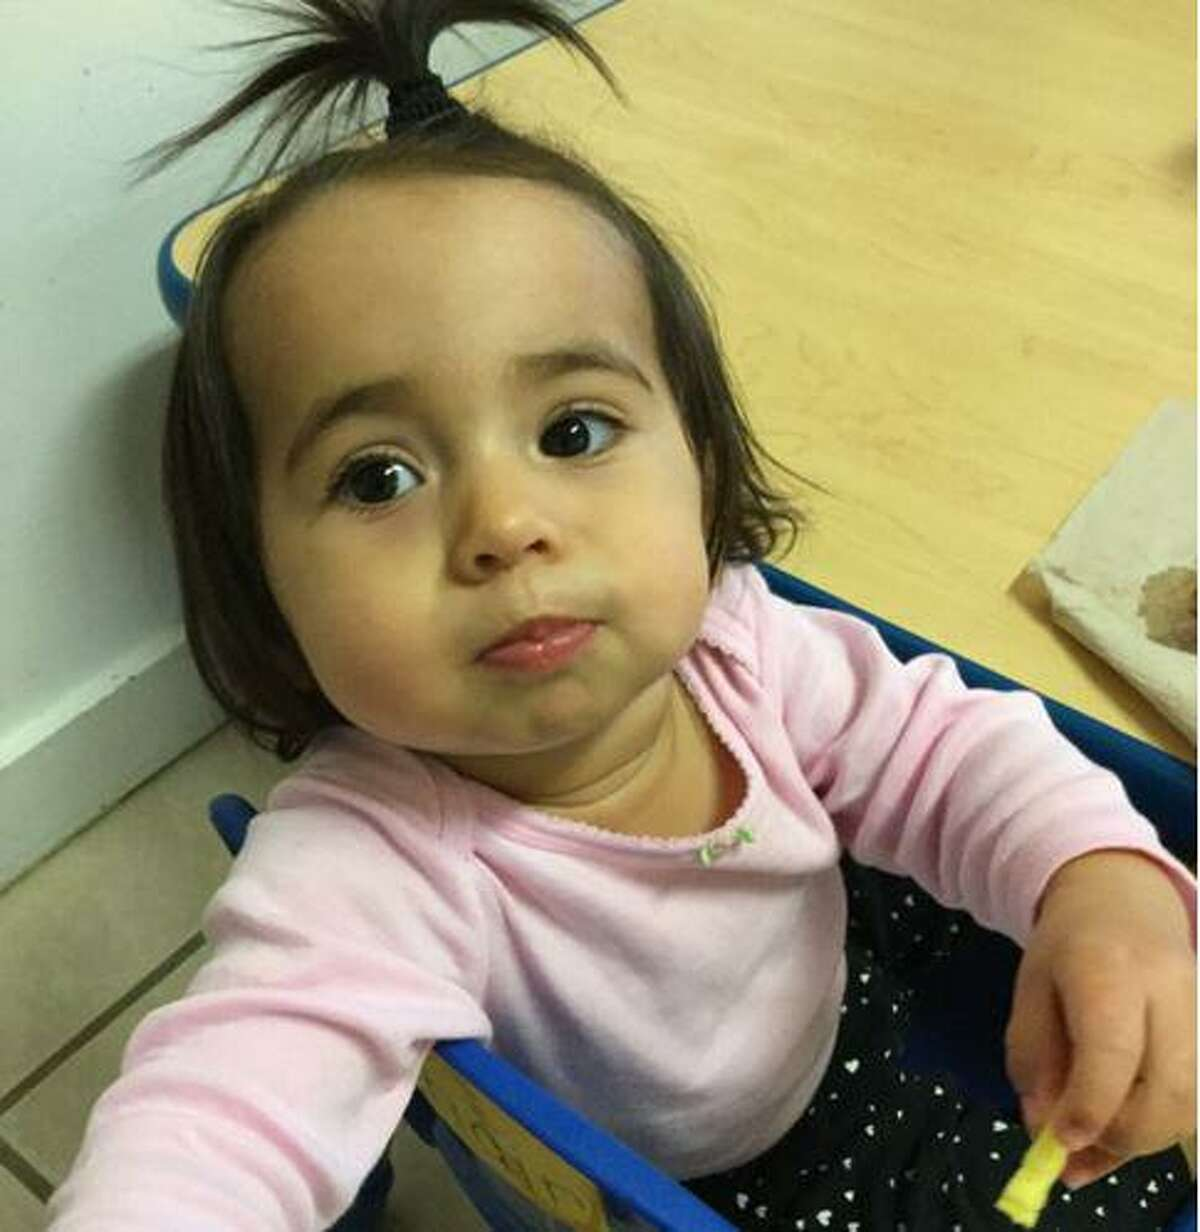 One-year-old Vanessa Morales has been missing since Dec. 3, 2019 after the body of her mother was found deceased at a home on Myrtle Avenue.